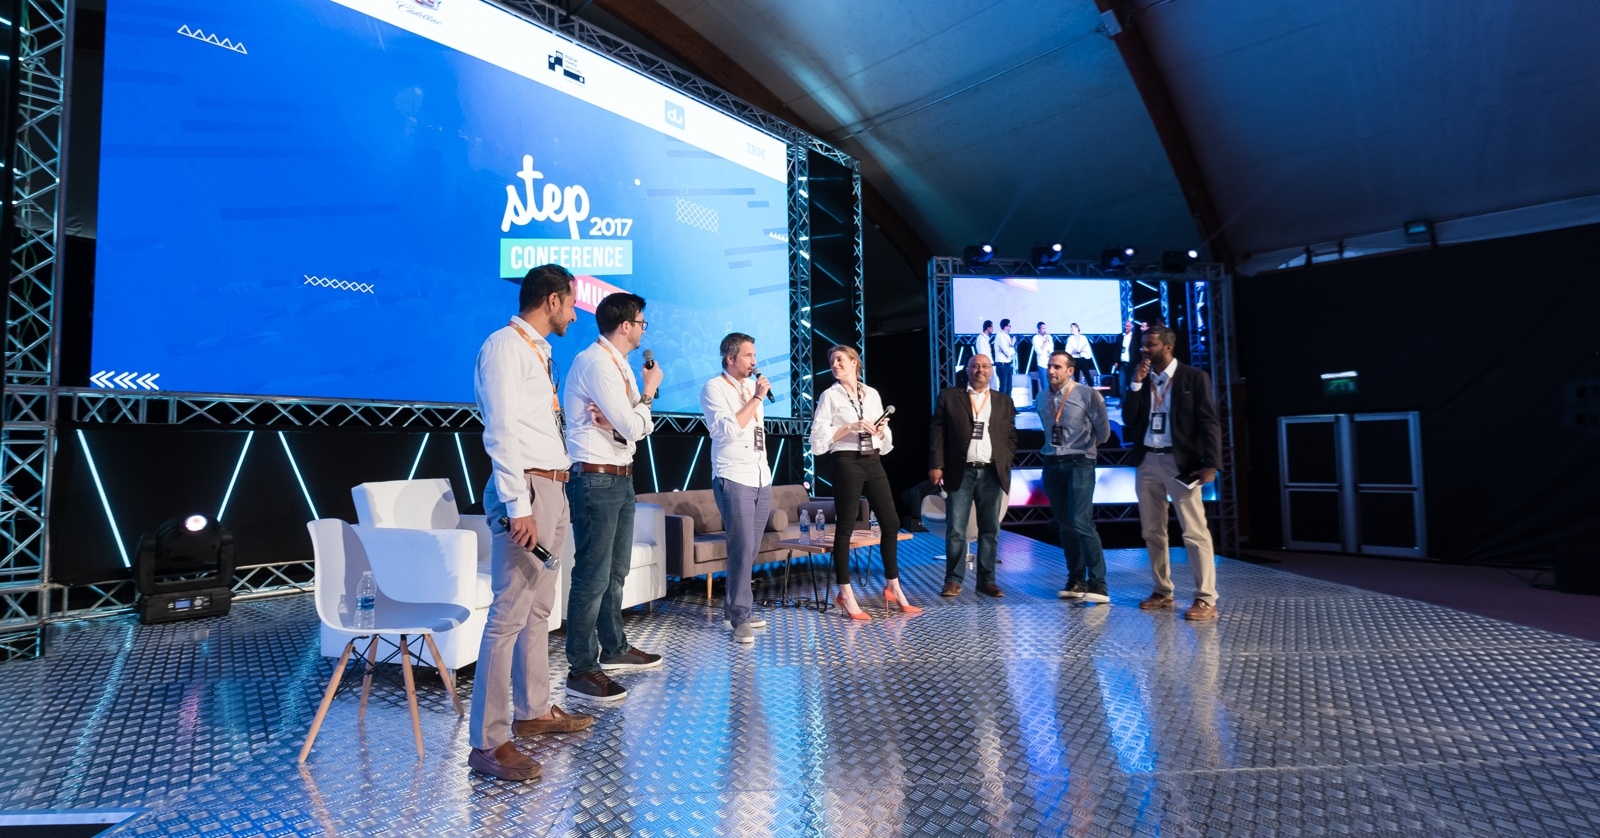 STEP Conference in Dubai March 2018